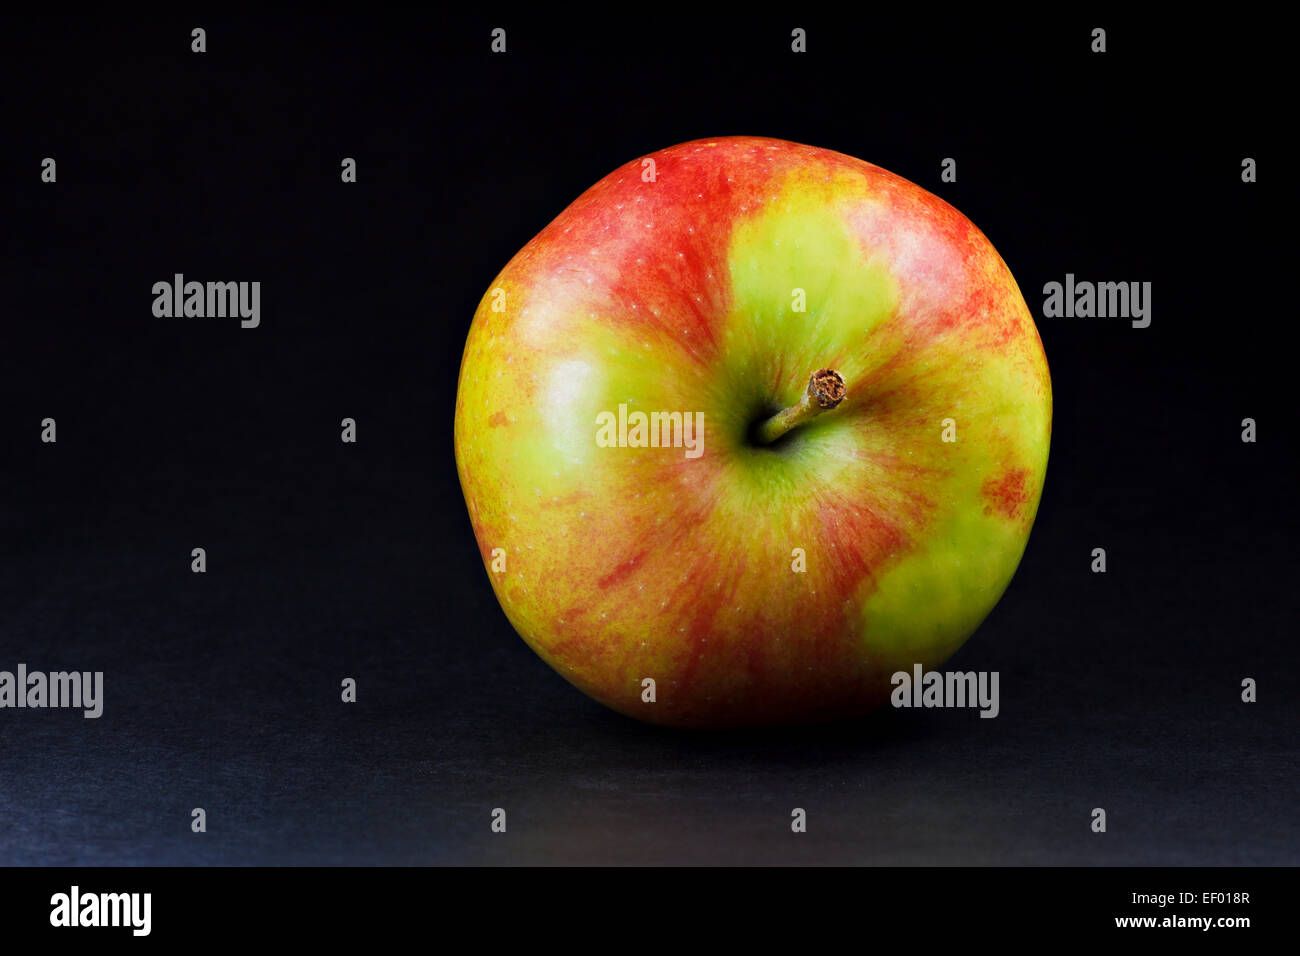 An apple on a black background. - Stock Image